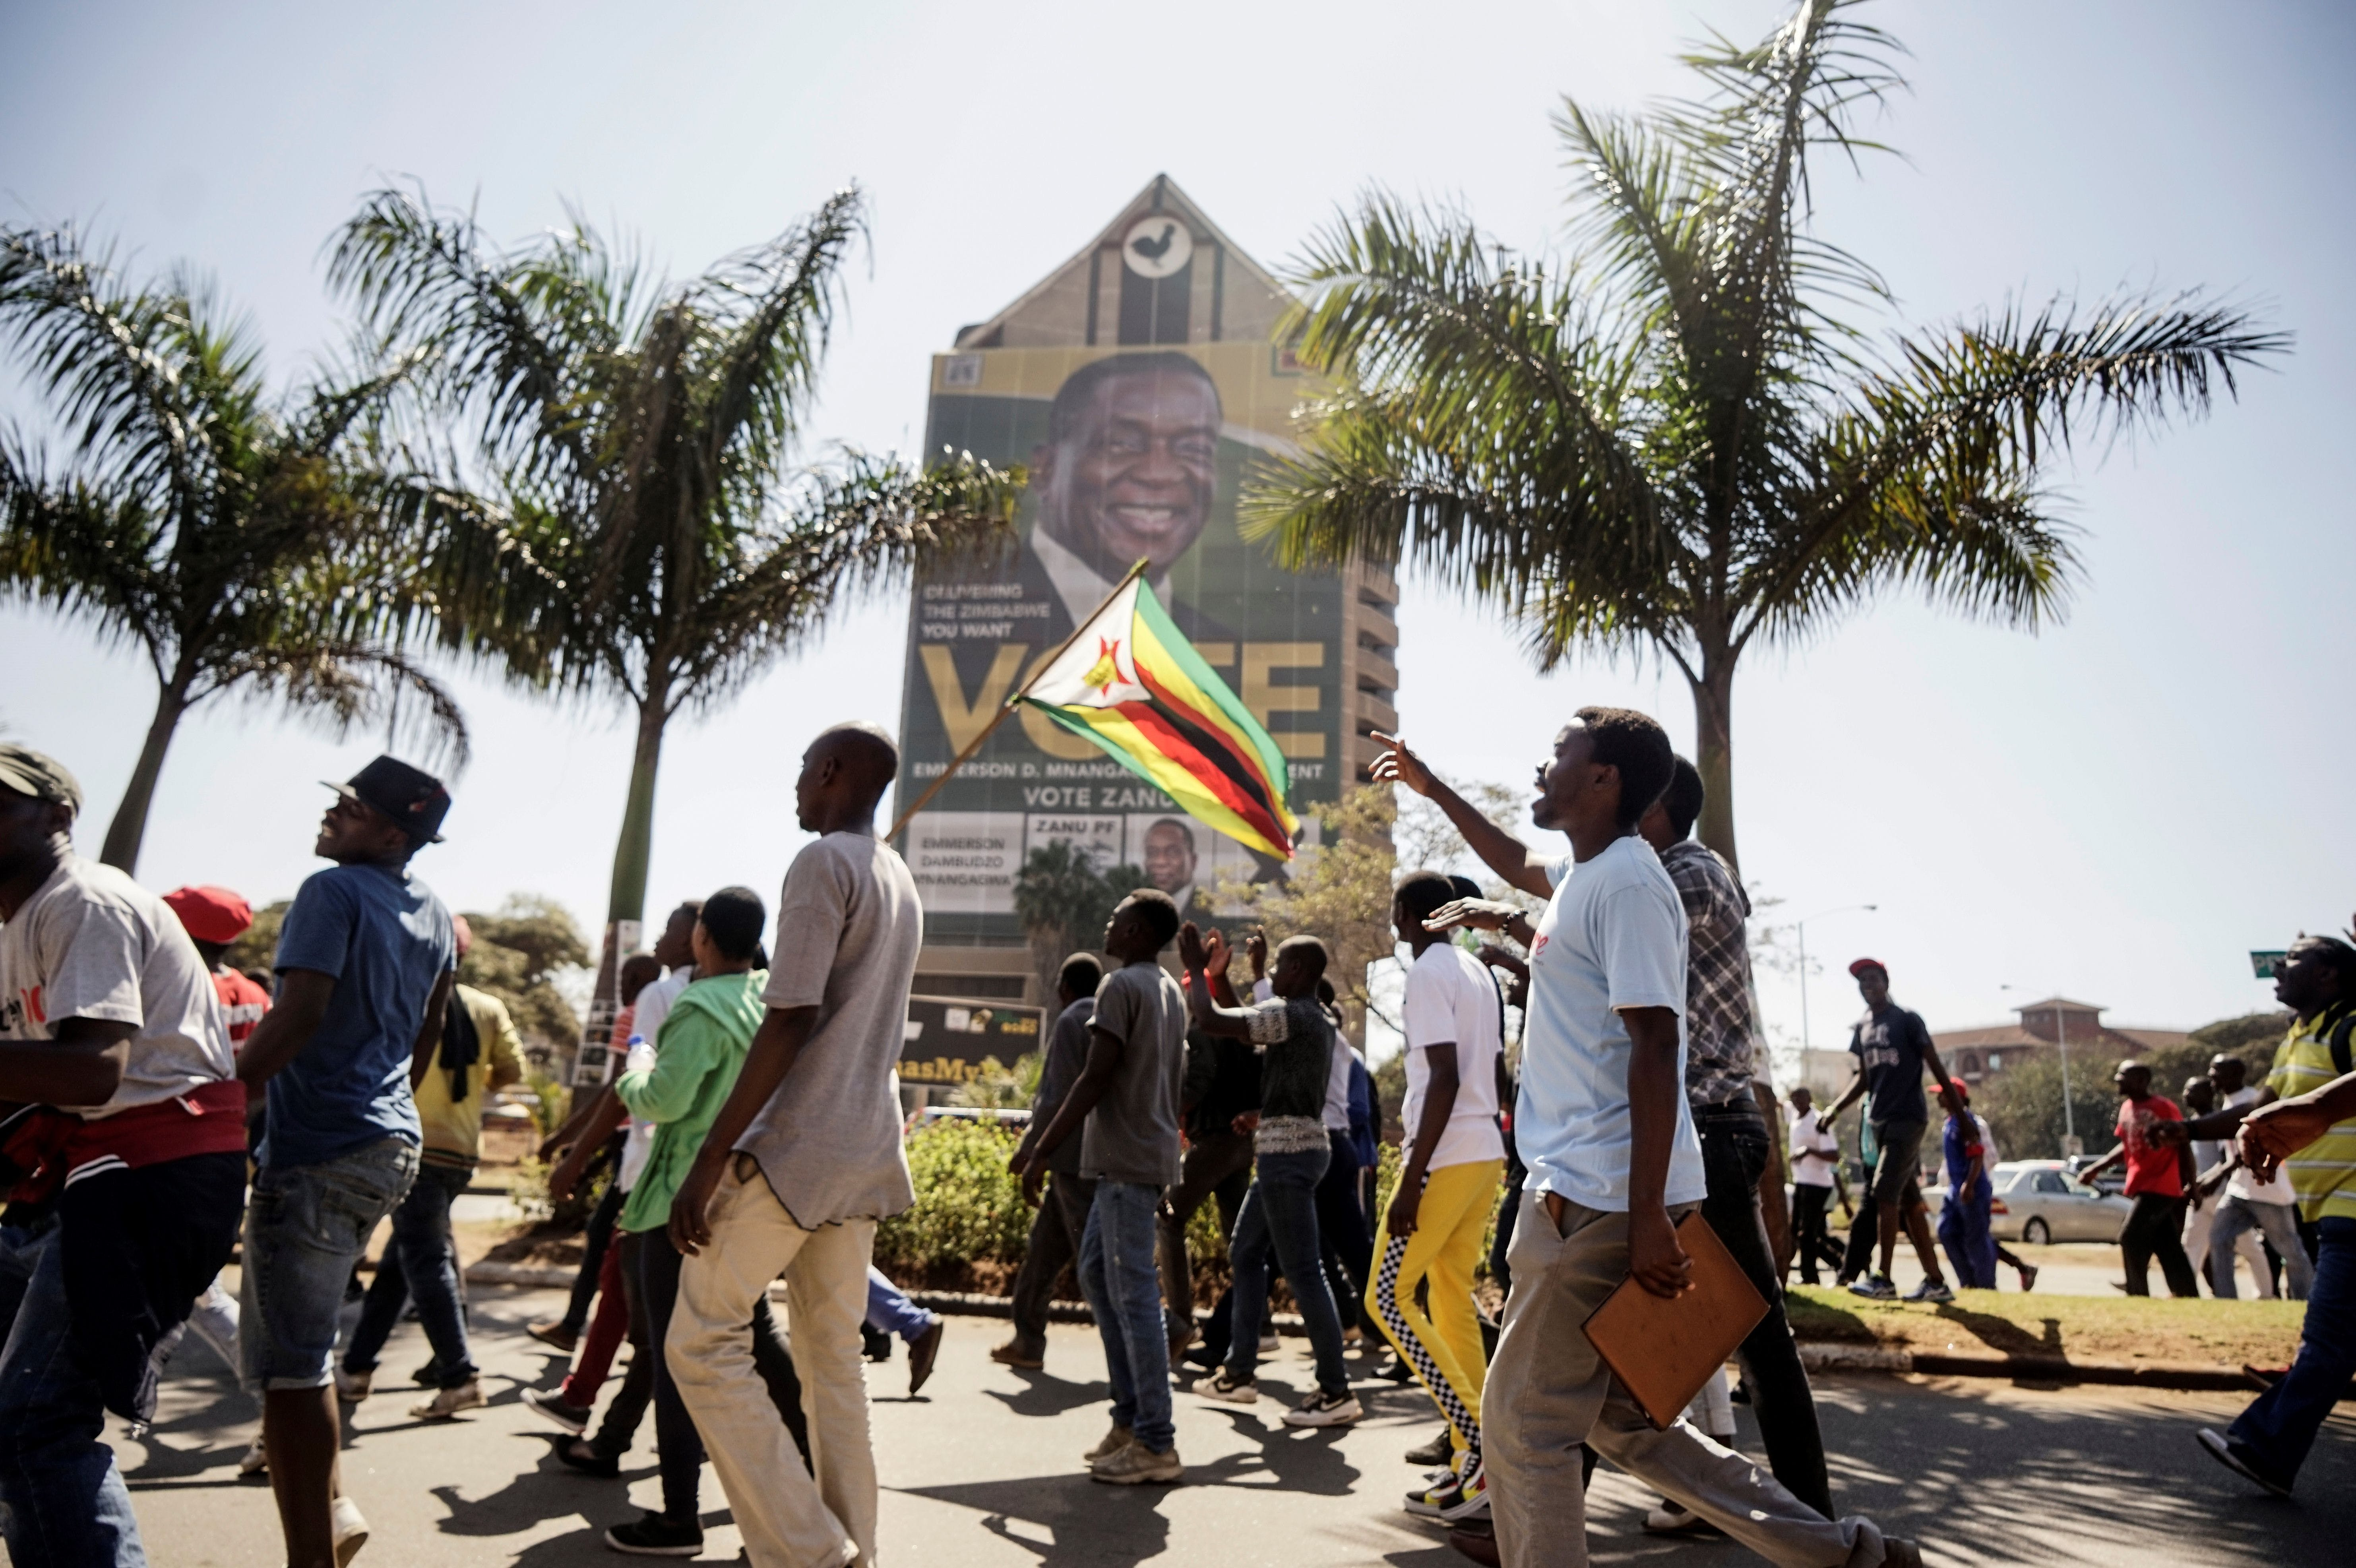 Opposition Movement for Democratic Change (MDC) supporters walk towards the Zimbabwe Electoral Commission (ZEC) headquarters on August 1, 2018 in Harare, to protest against alleged fraud in elections. - Zimbabwe's ruling ZANU-PF party won the most seats in parliament, official results showed on August 1, 2018, as the opposition MDC protested against alleged widespread fraud and the count continued in the key presidential race. (Photo by Zinyange AUNTONY / AFP) (Photo credit should read ZINYANGE AUNTONY/AFP/Getty Images)